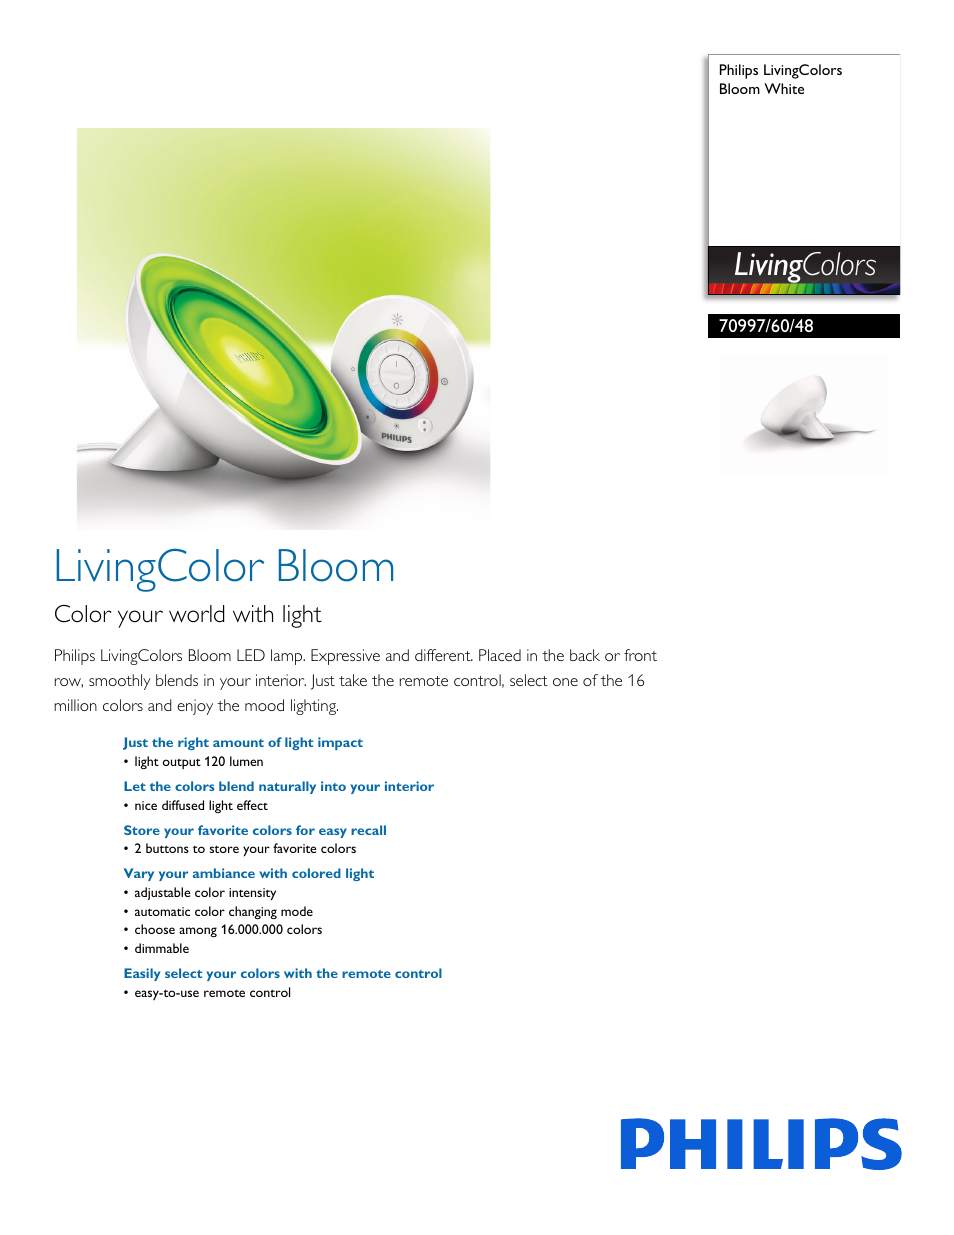 Philips Livingcolors Bloom White 70997 60 48 User Manual 3 Pages